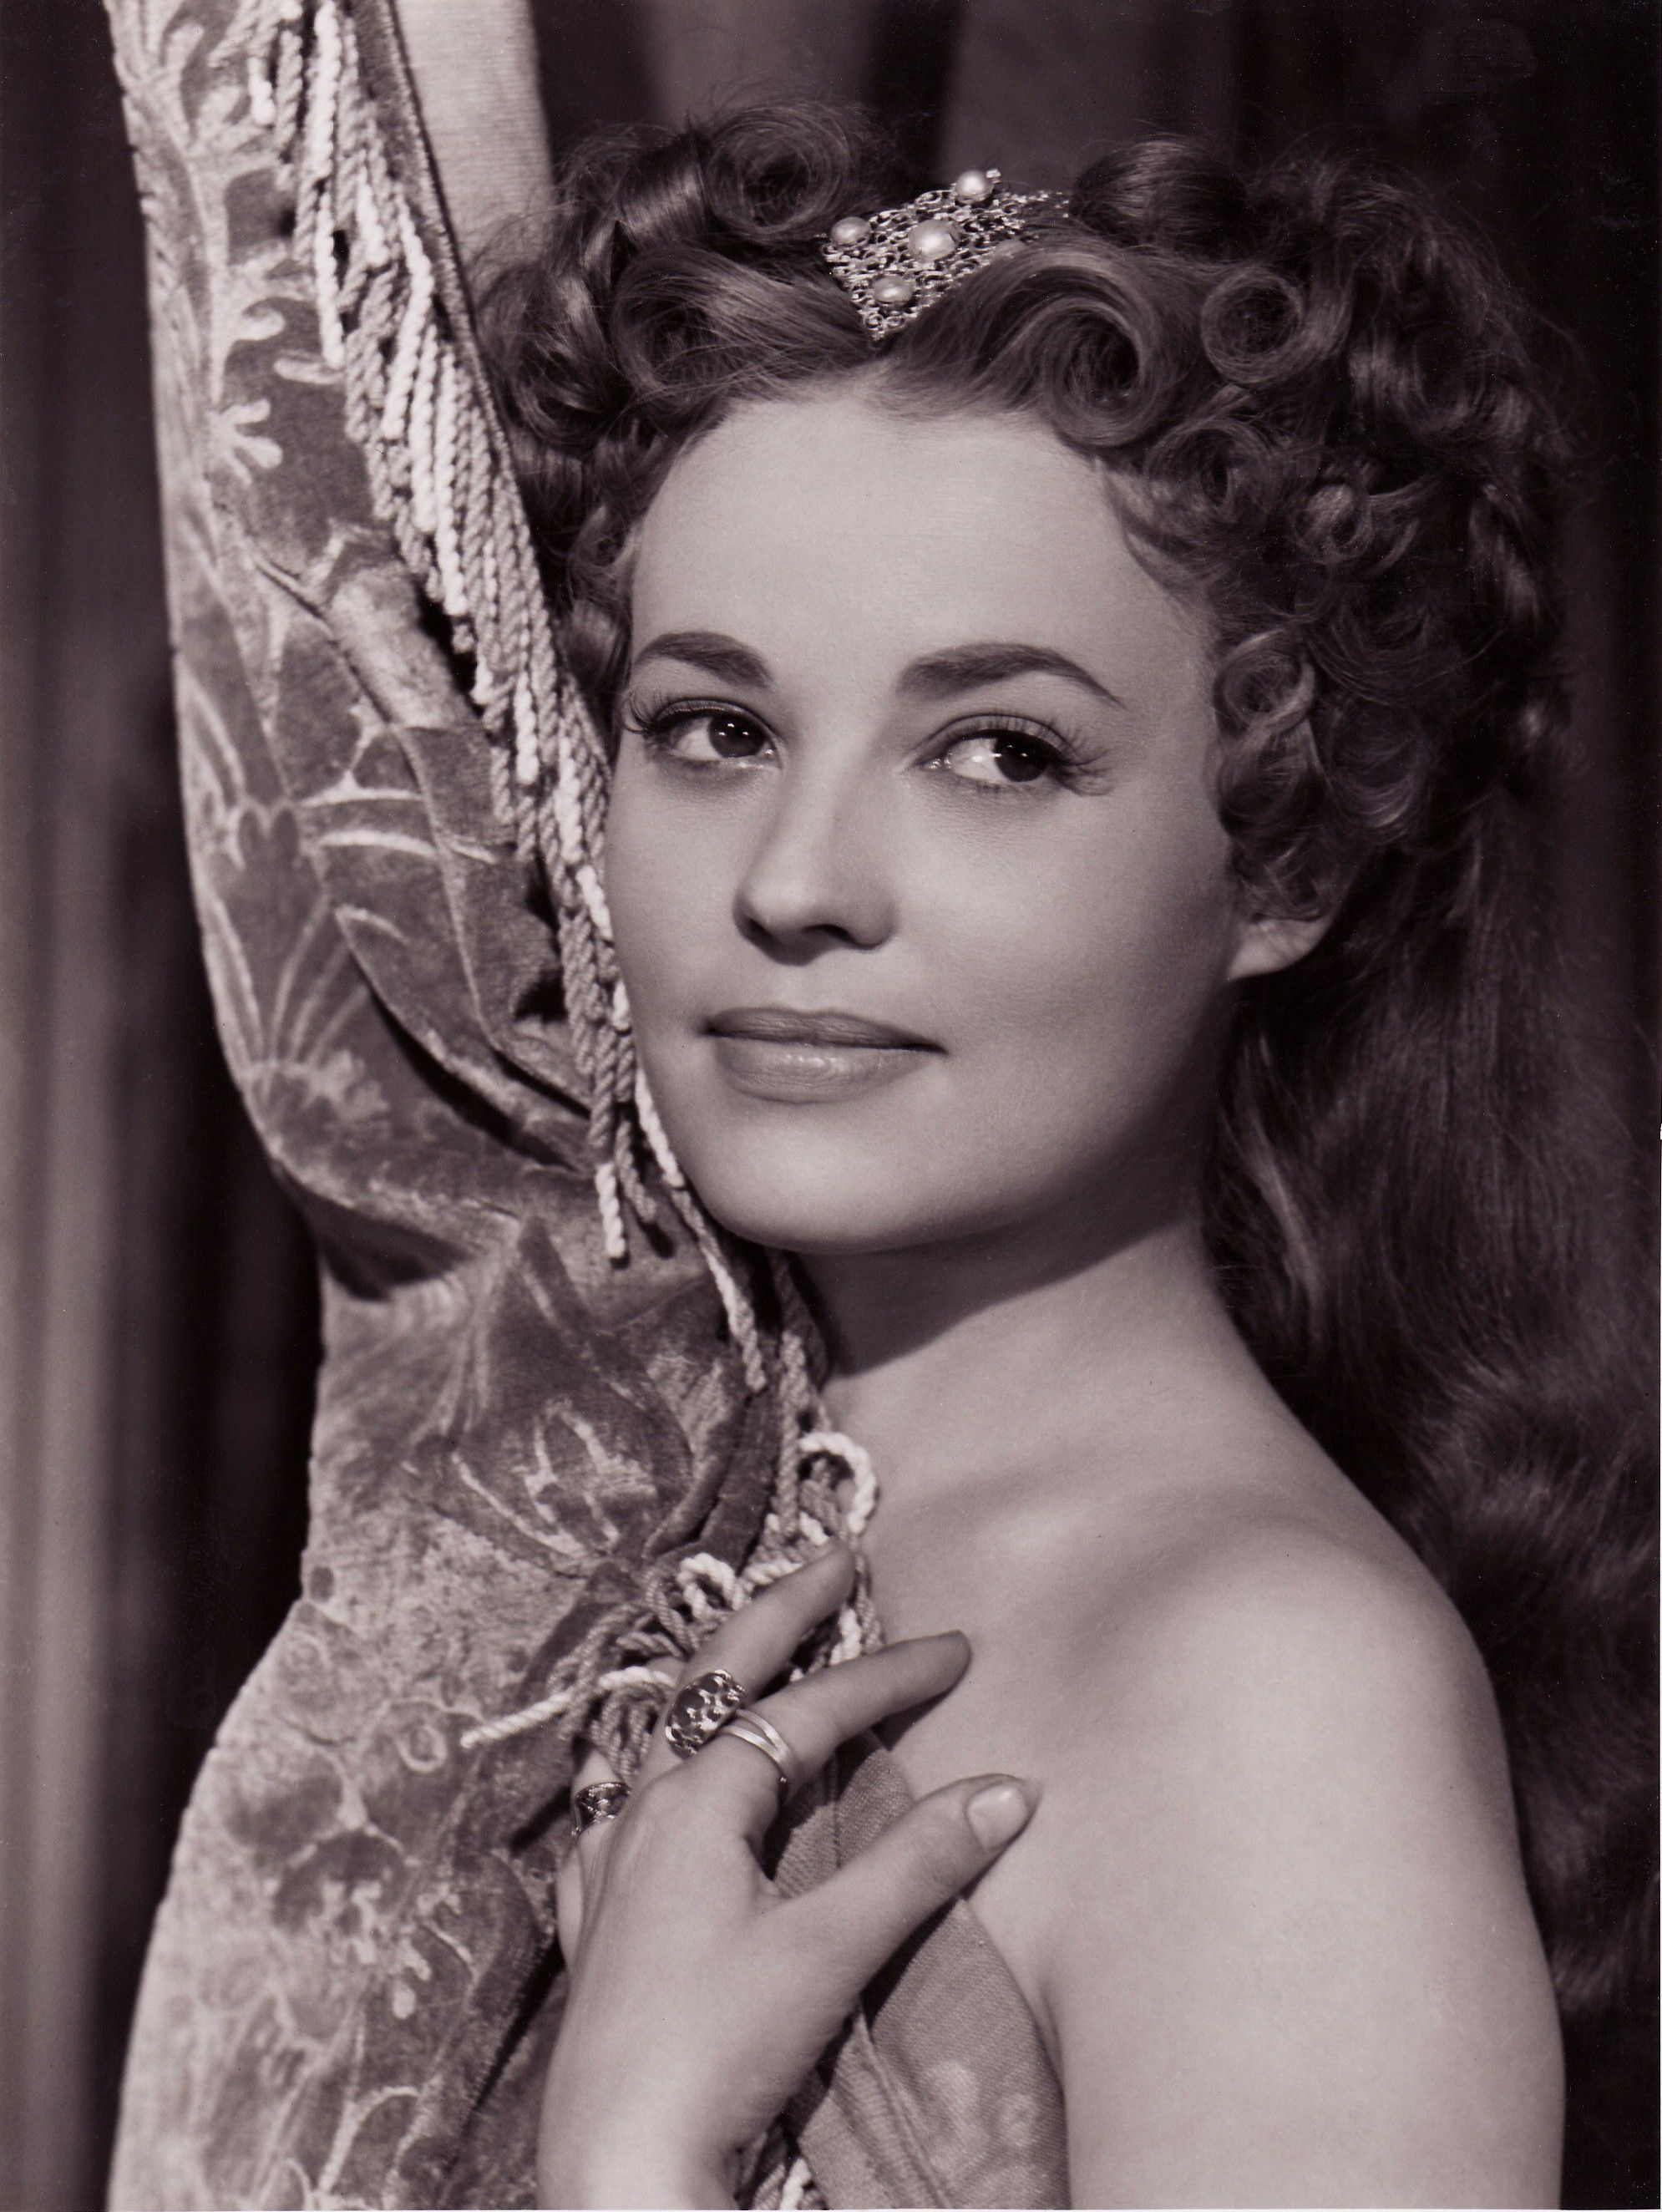 Jeanne Moreau in La reine Margot (1954)